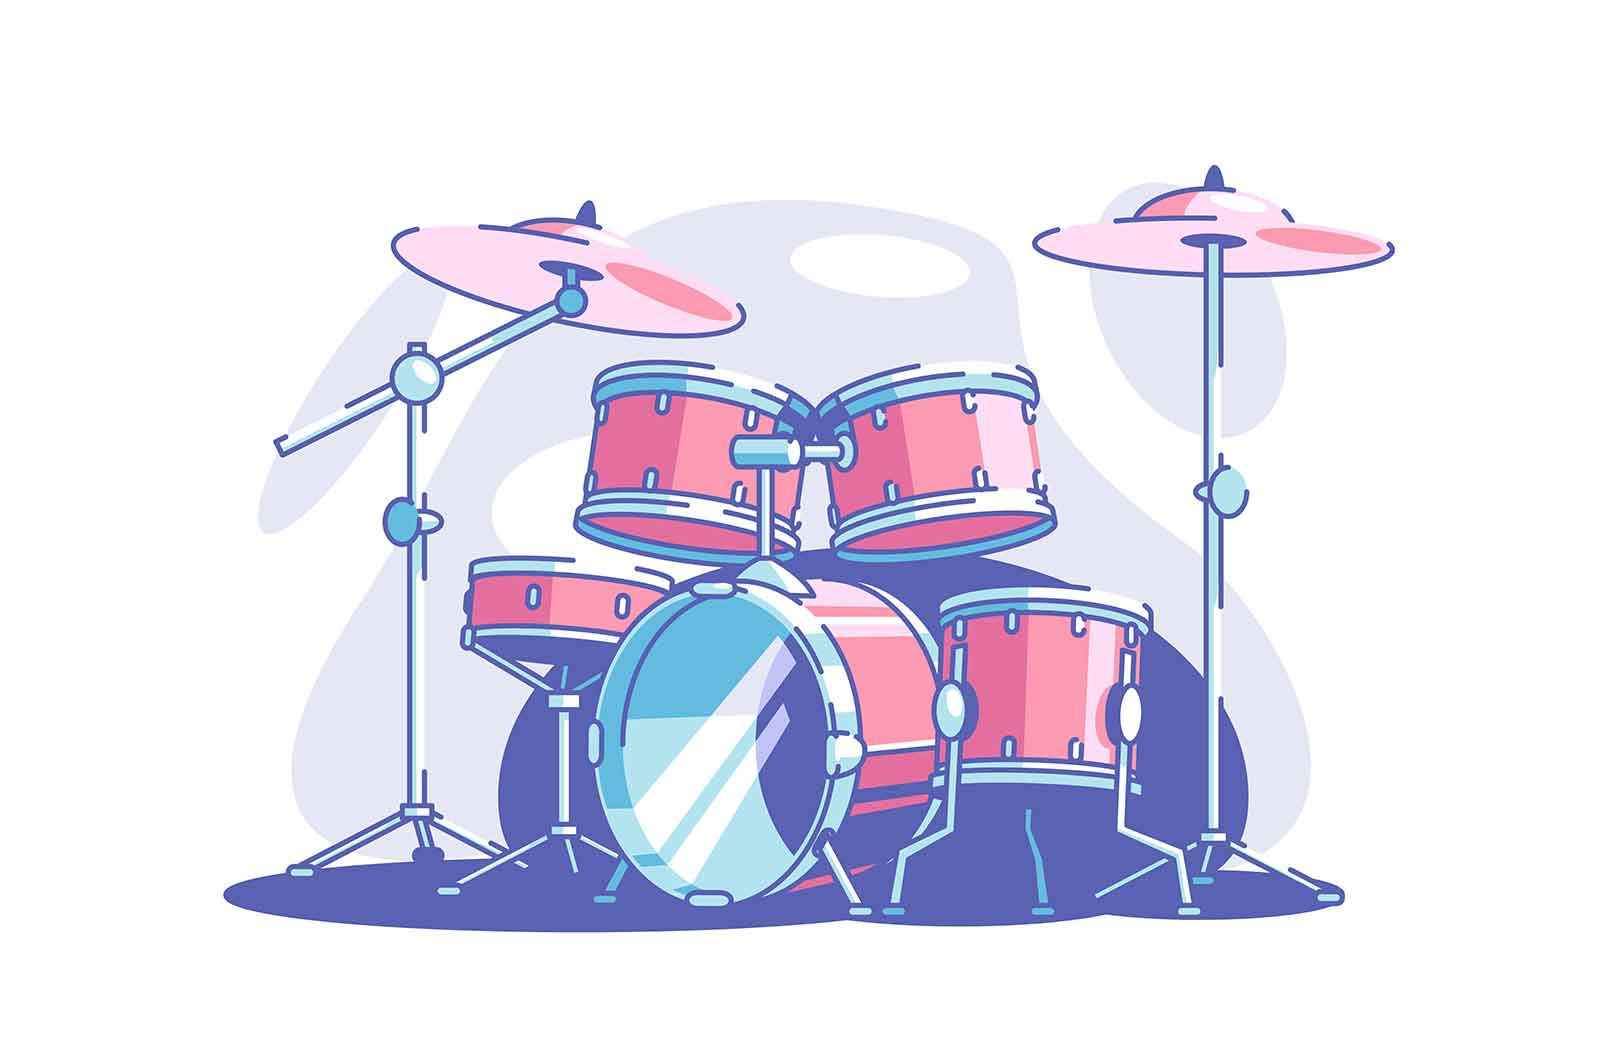 Professional drum set vector illustration. Equipment for band flat style. Musical genre. Performance and concert. Entertainment art and music concept. Isolated on white background